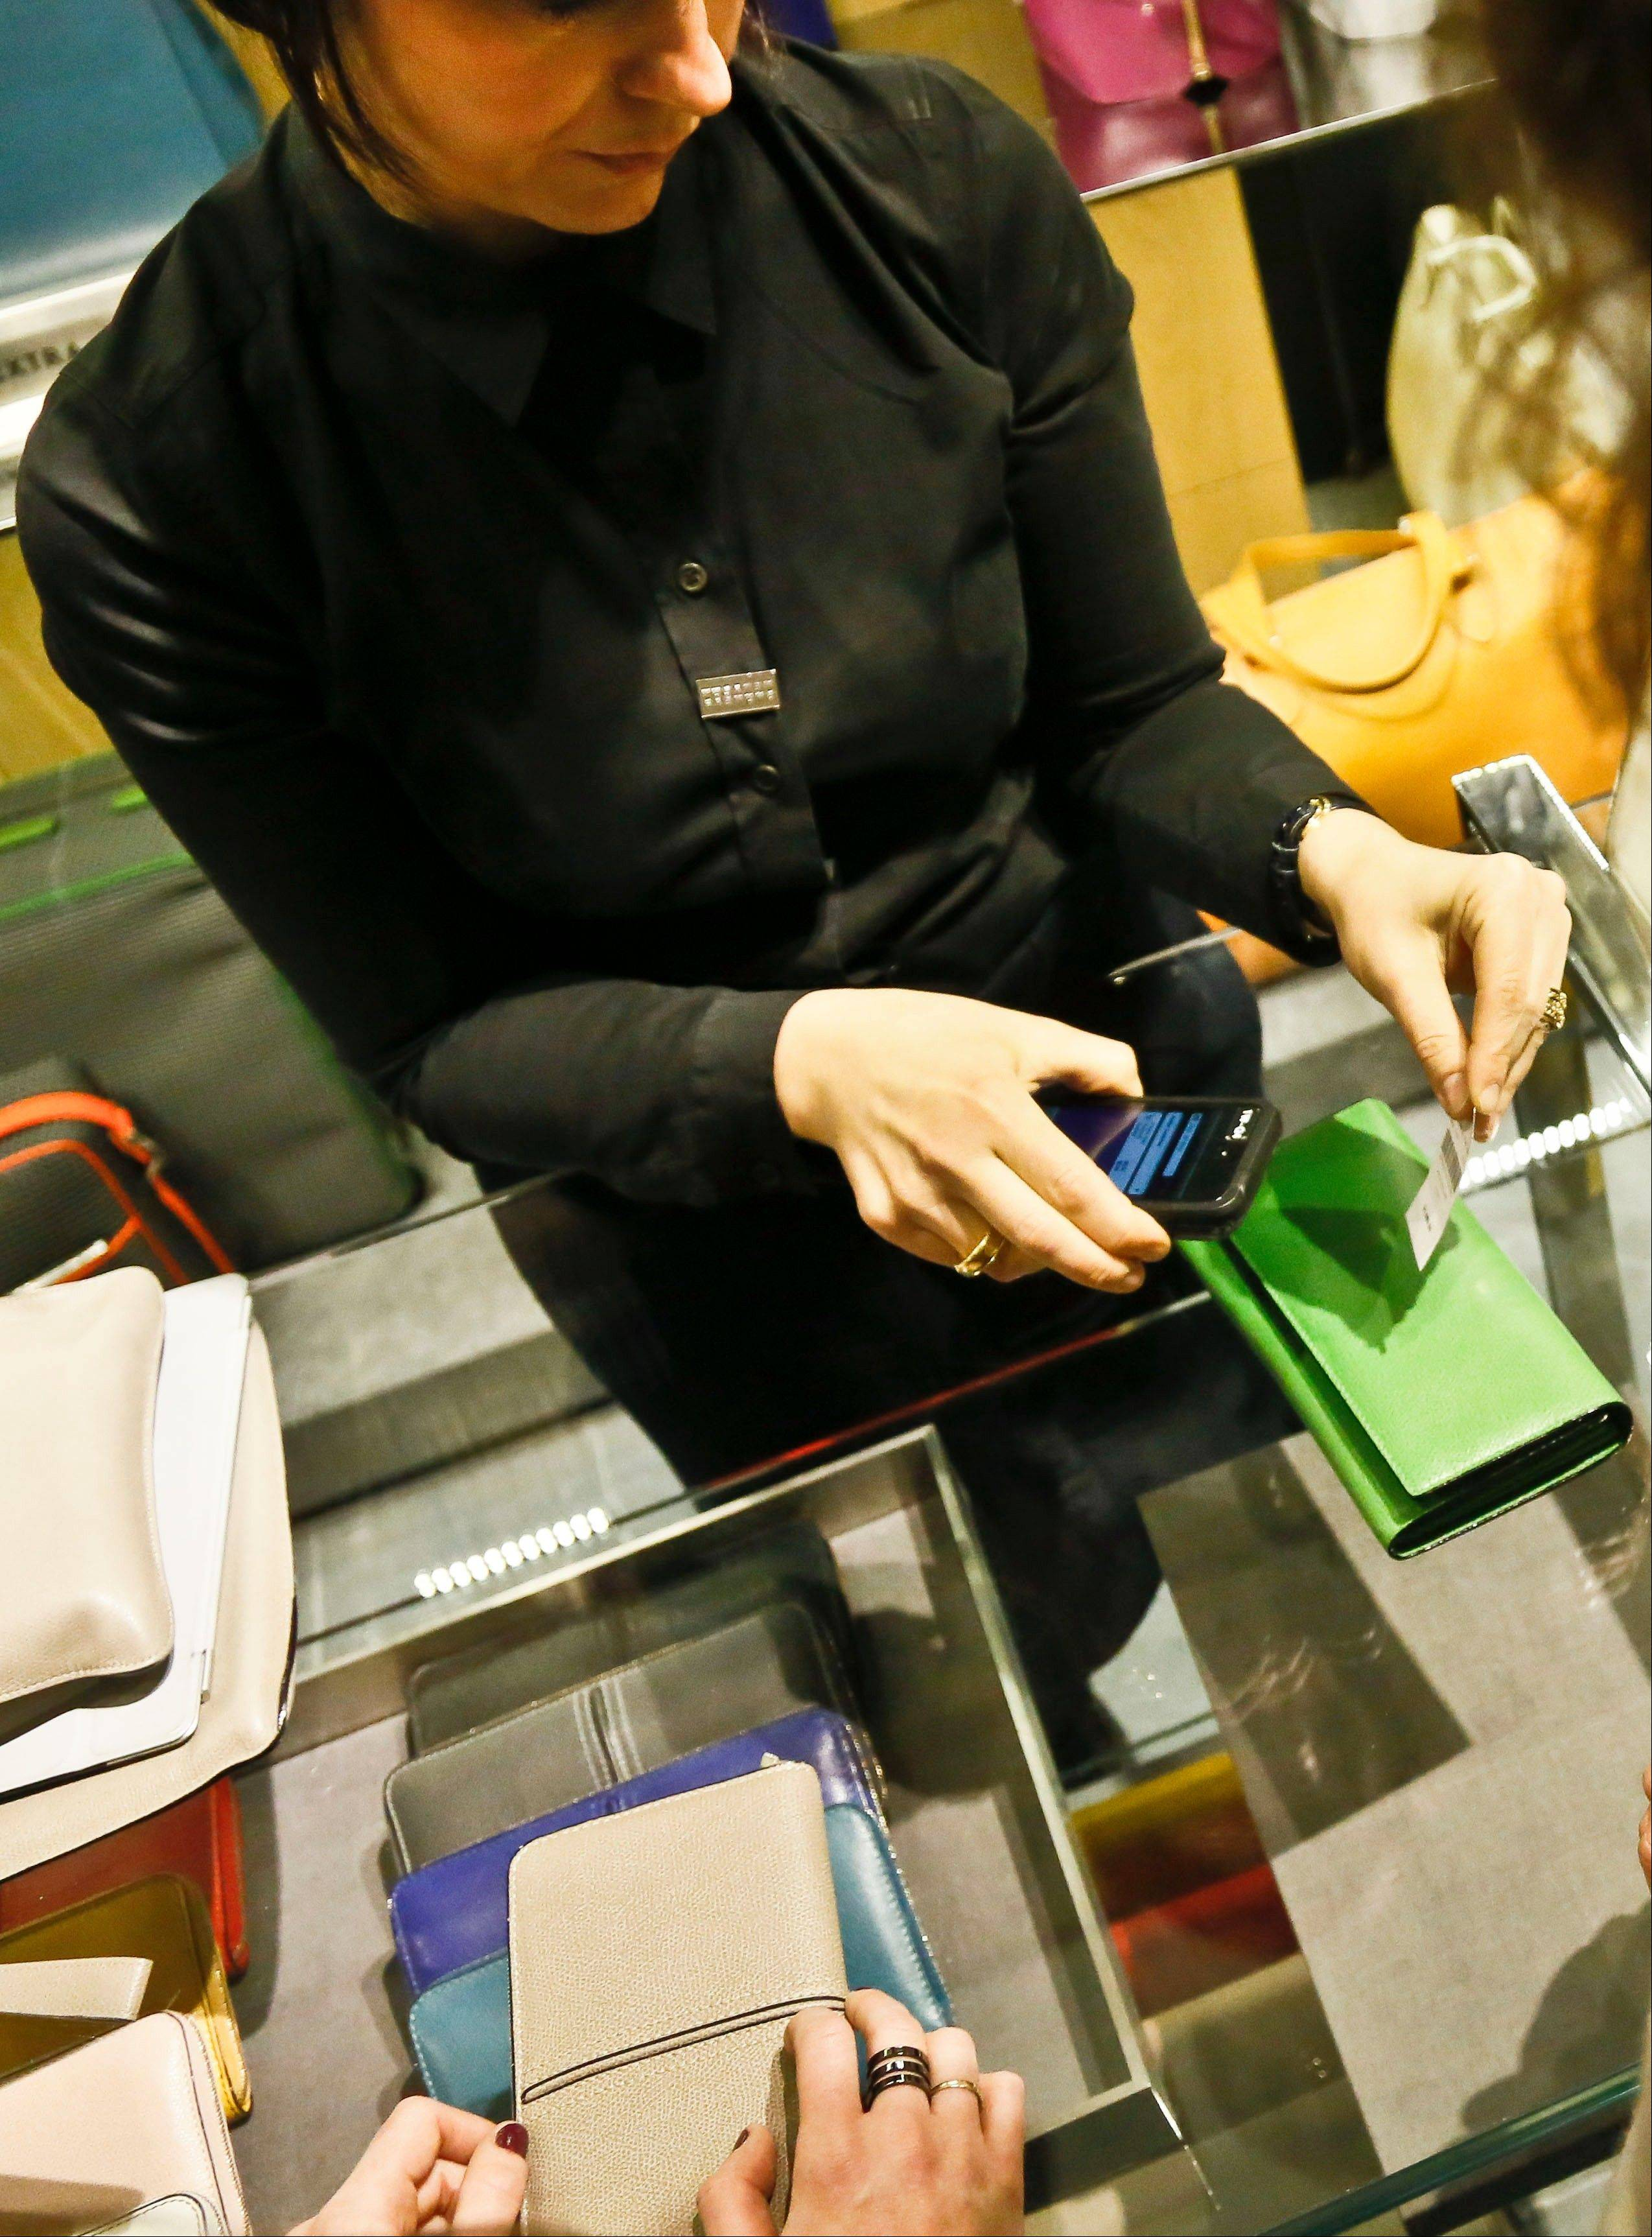 Stores across the country are ditching the old-fashioned, clunky cash registers and instead having salespeople -- and shoppers themselves -- checkout on smartphones and tablet computers.